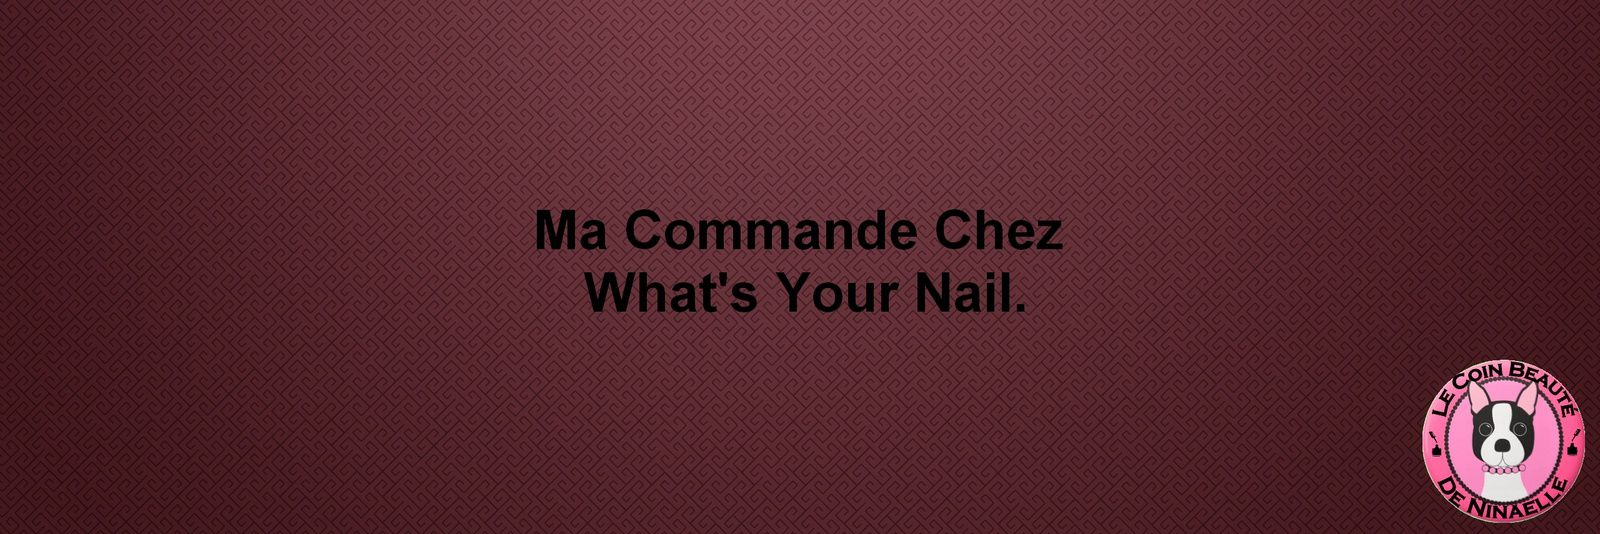 Ma Commande Chez What's Your Nail